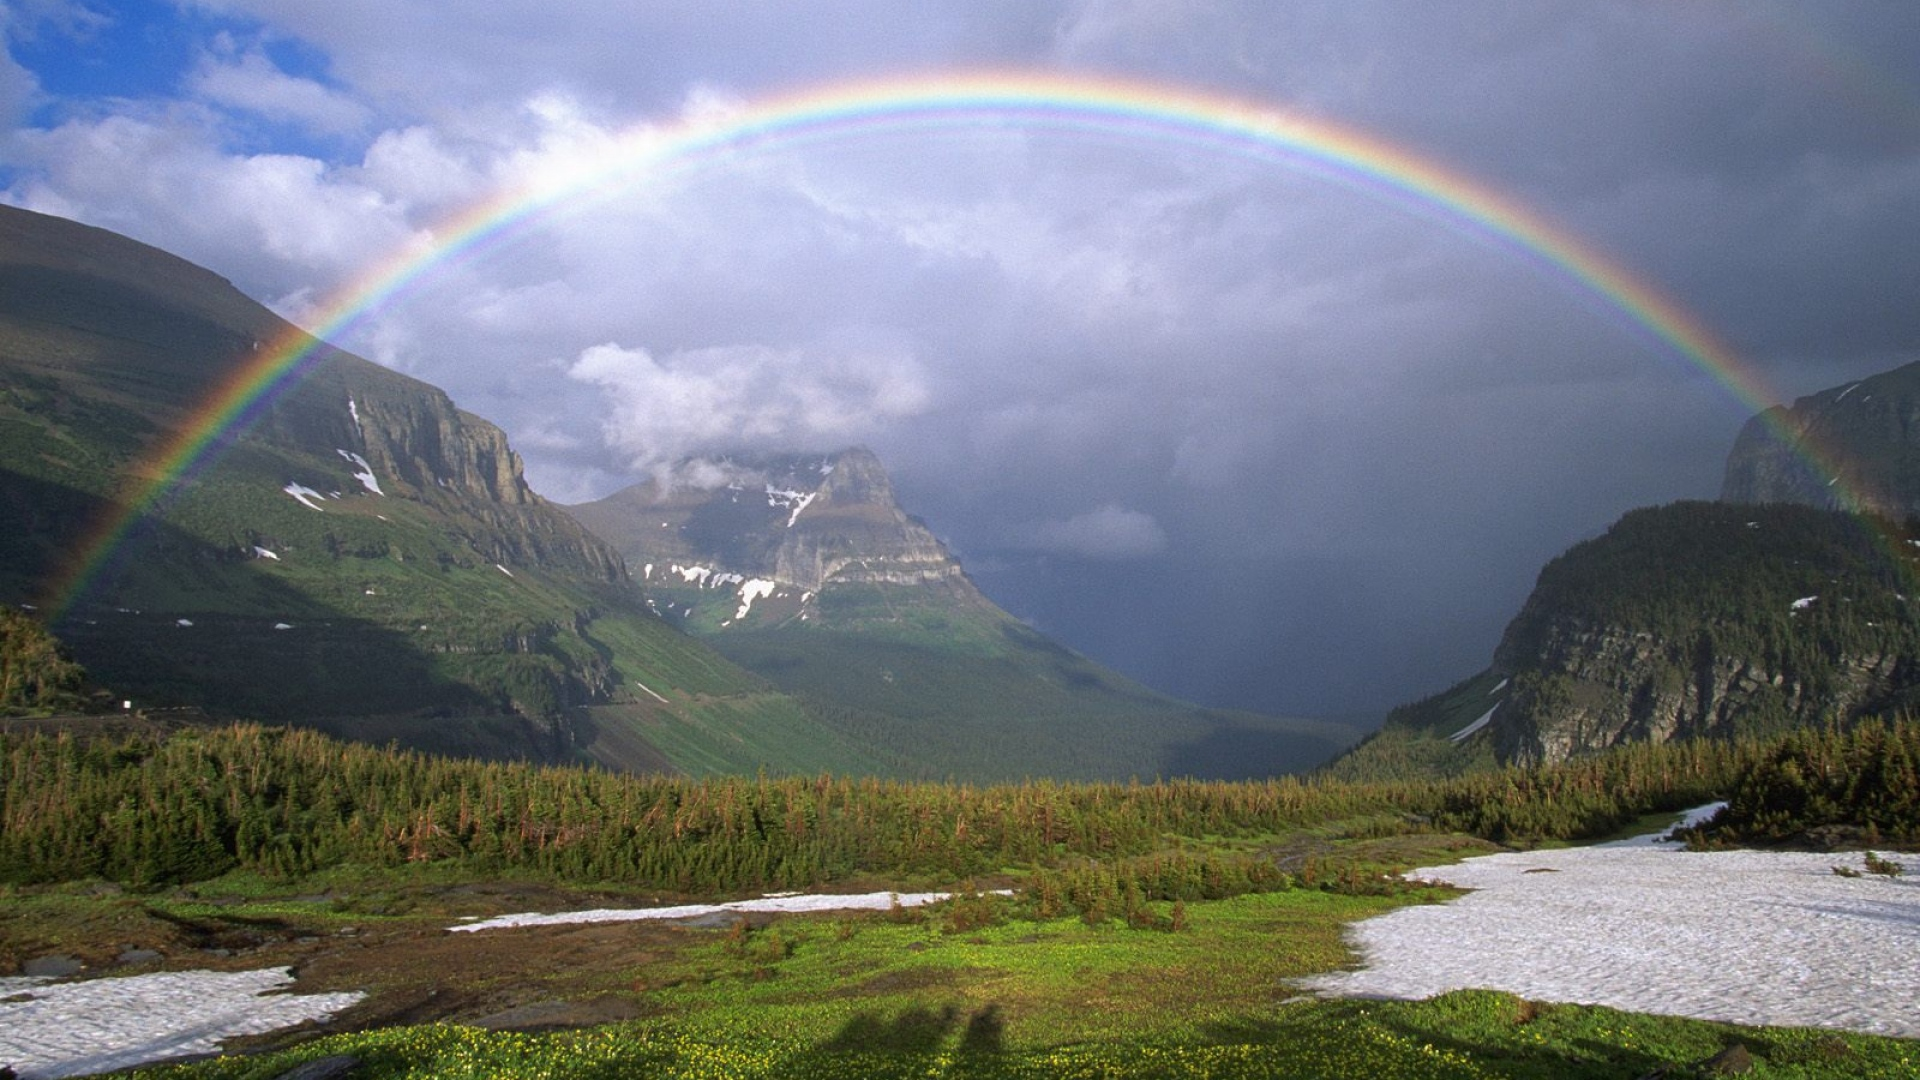 Earnings Disclaimer >> Download Wallpaper 1920x1080 mountains, rainbow, snow, greens, clouds Full HD 1080p HD Background